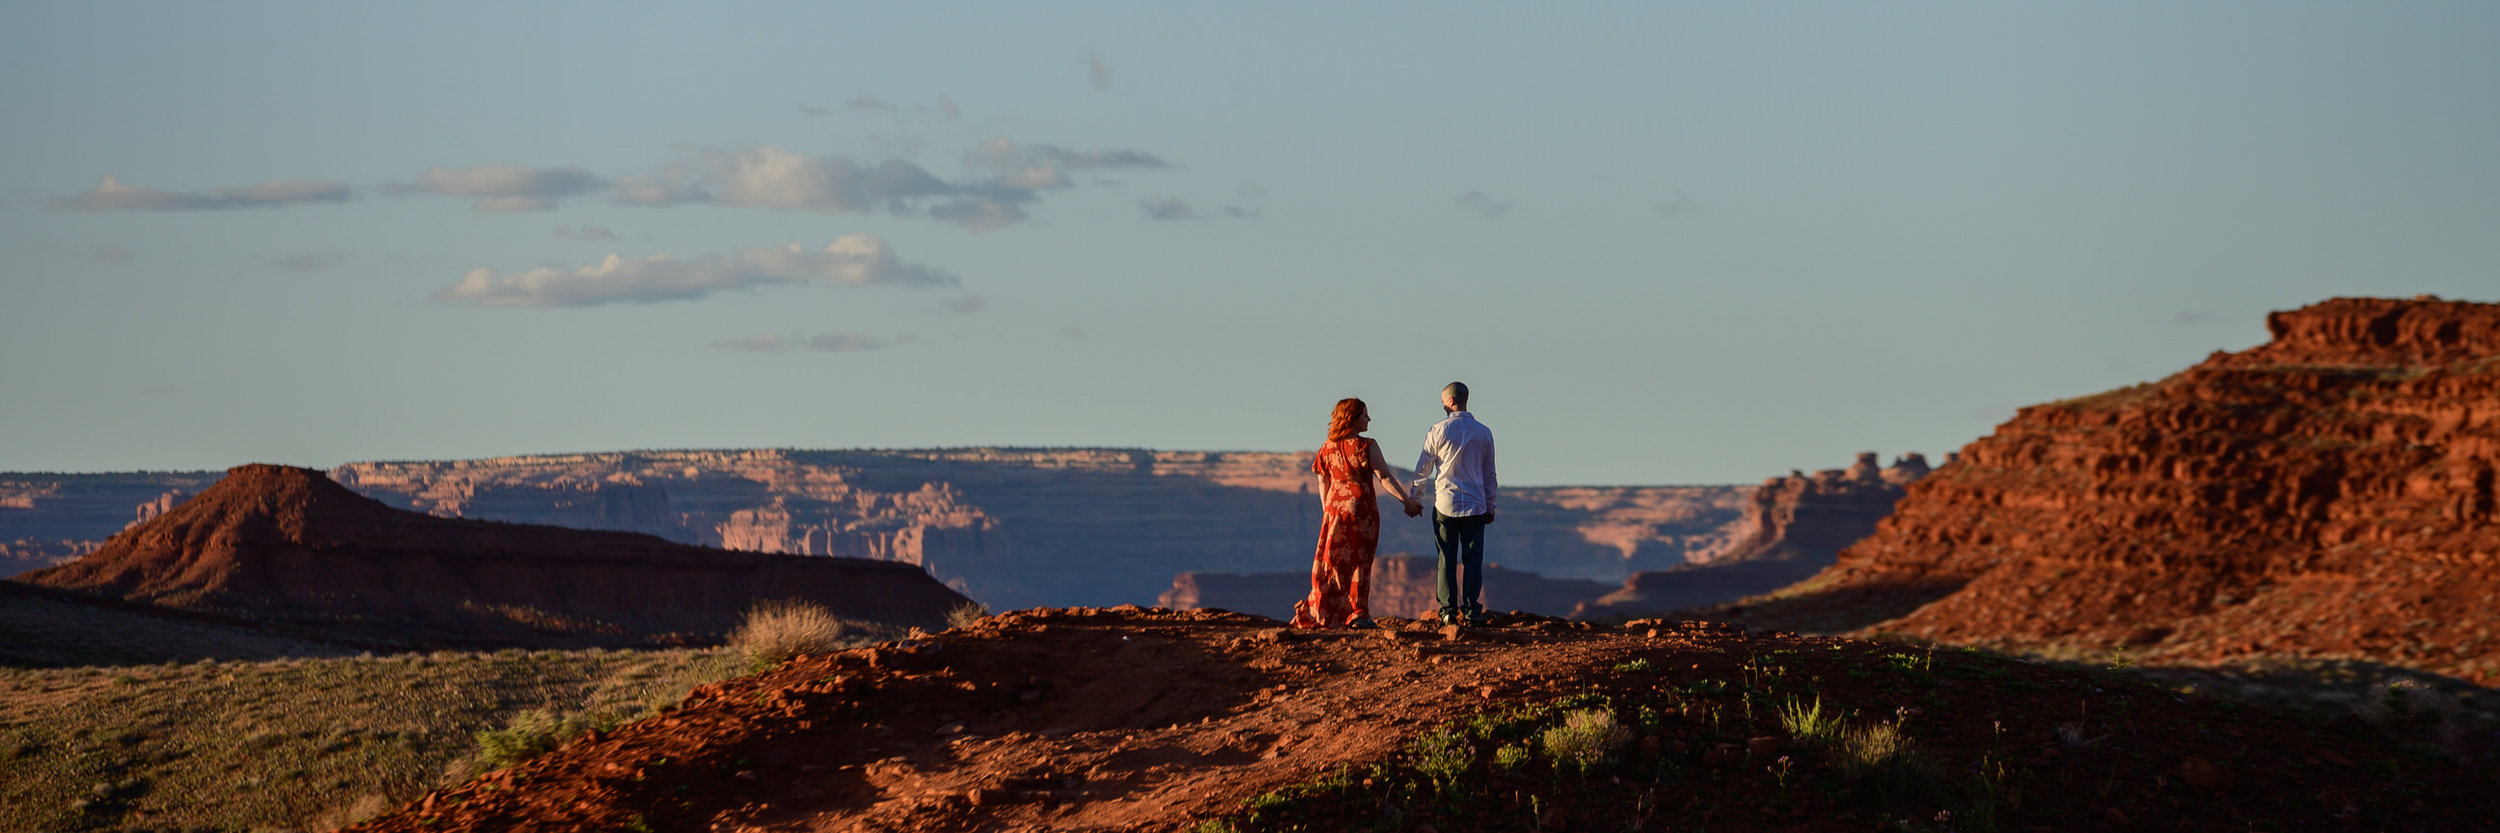 MonumentValleyEngagement-Alicia&Rob-9694.jpg